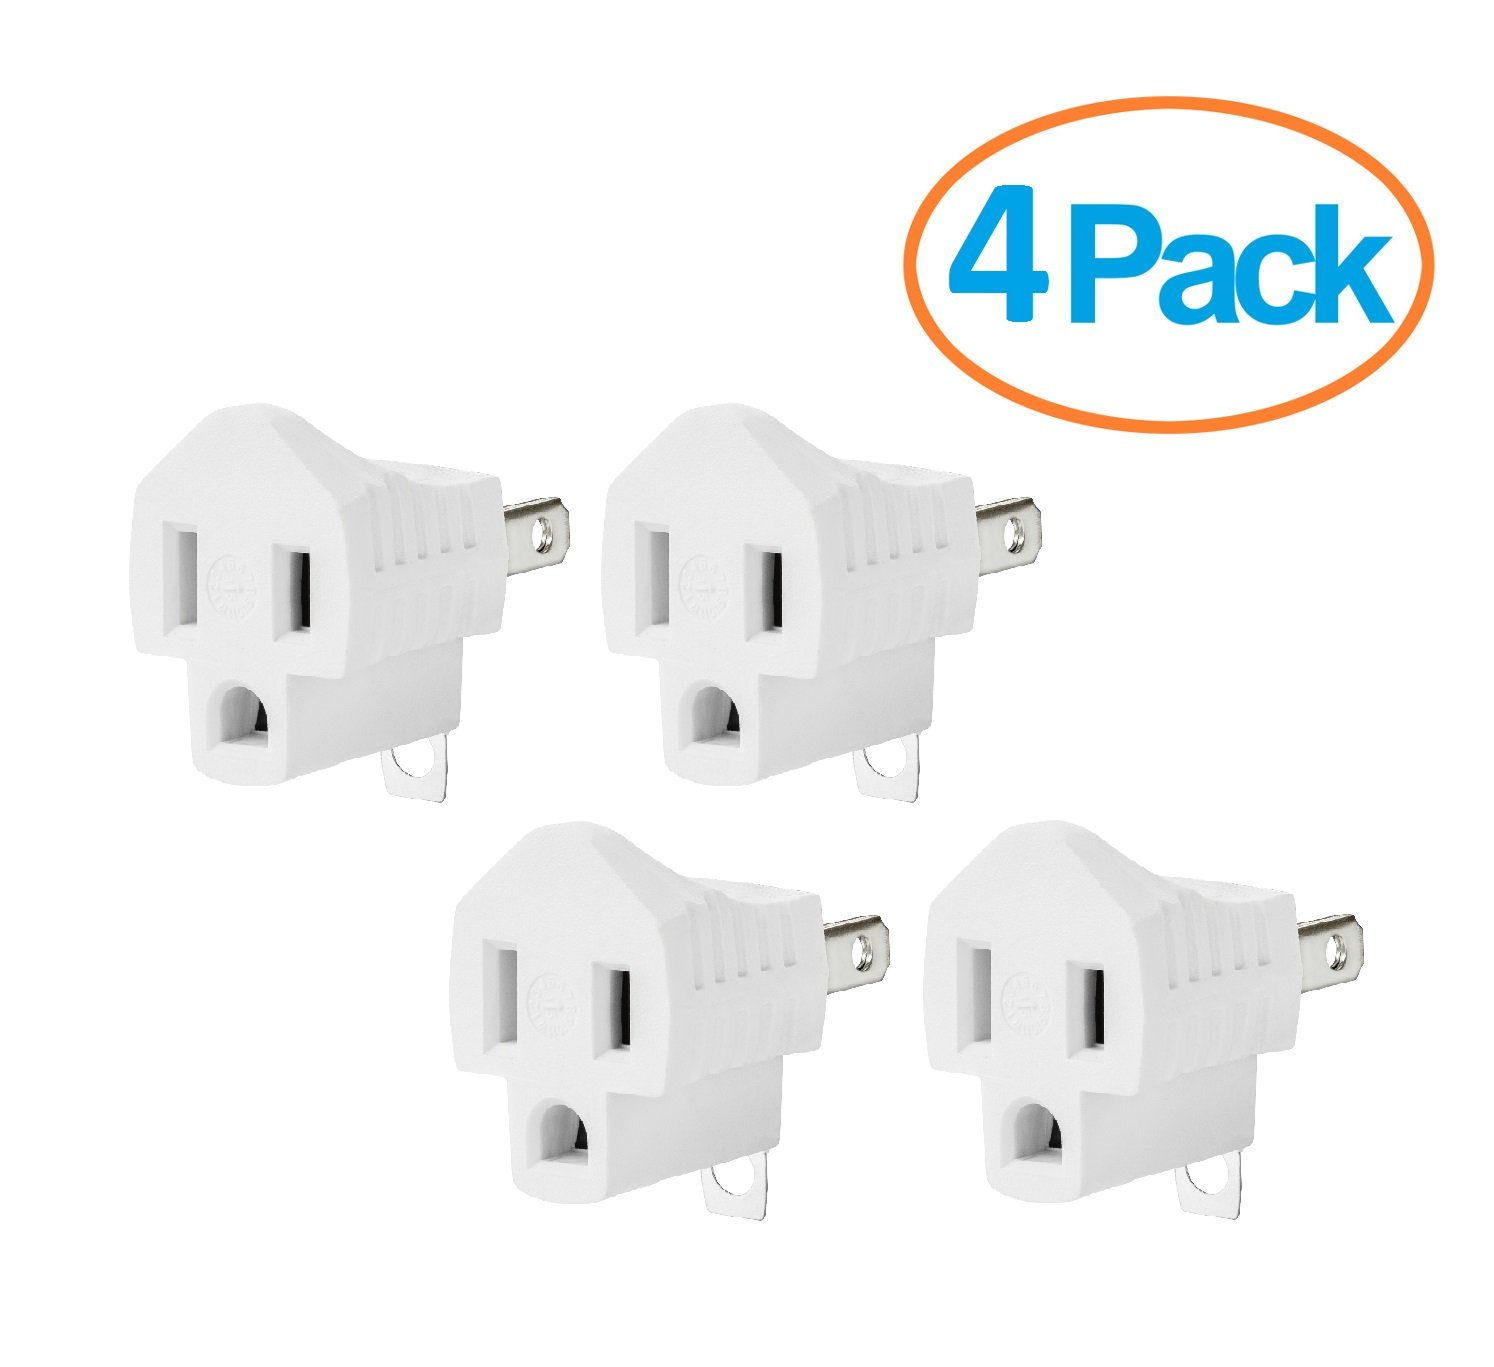 Yubi Power Grounding Adapter Plug - Grounded Outlet Adapter - 2 Prong to 3 Prong Adapter - 4 Pack